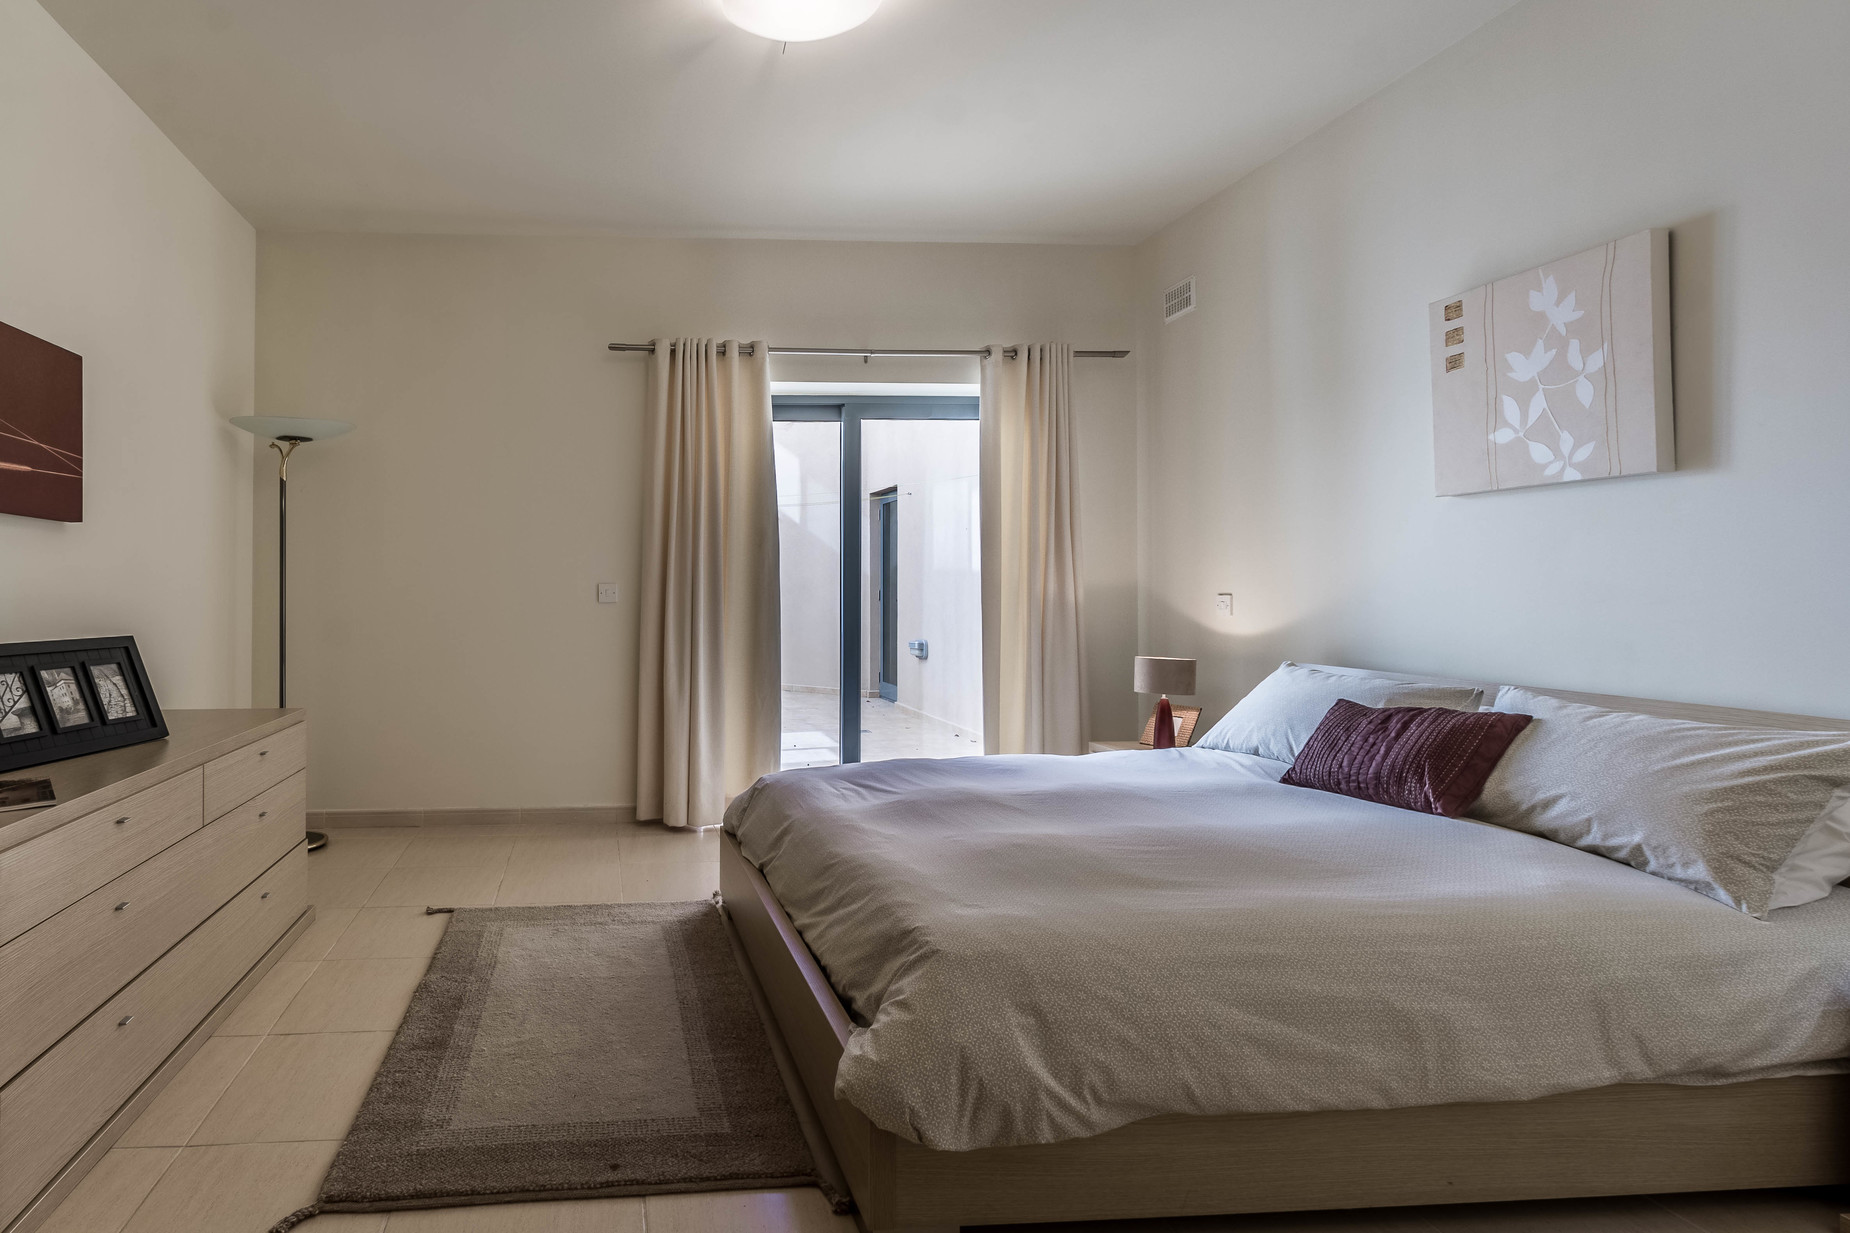 4 bed Apartment For Sale in Mellieha, Mellieha - thumb 15